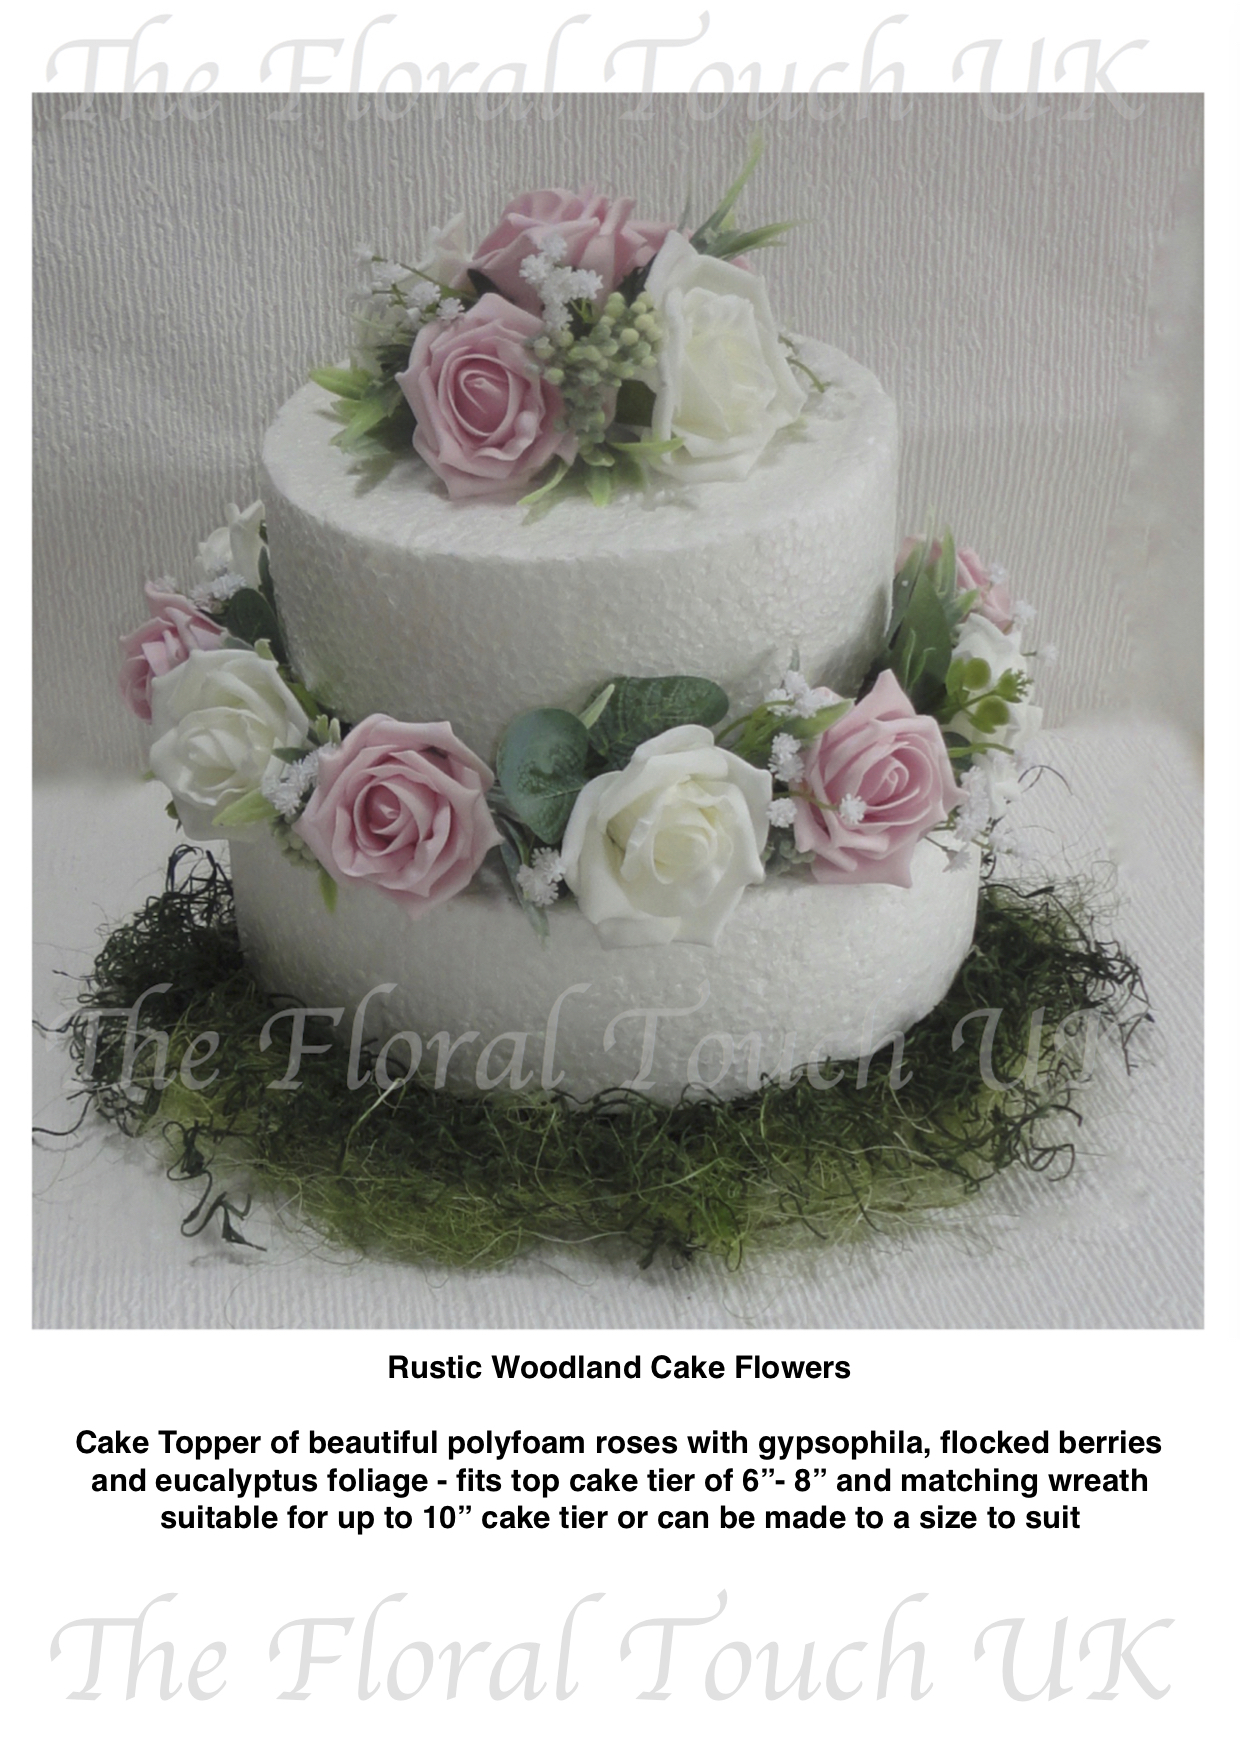 Cake Toppers The Floral Touch Uk Cake Tier Displays